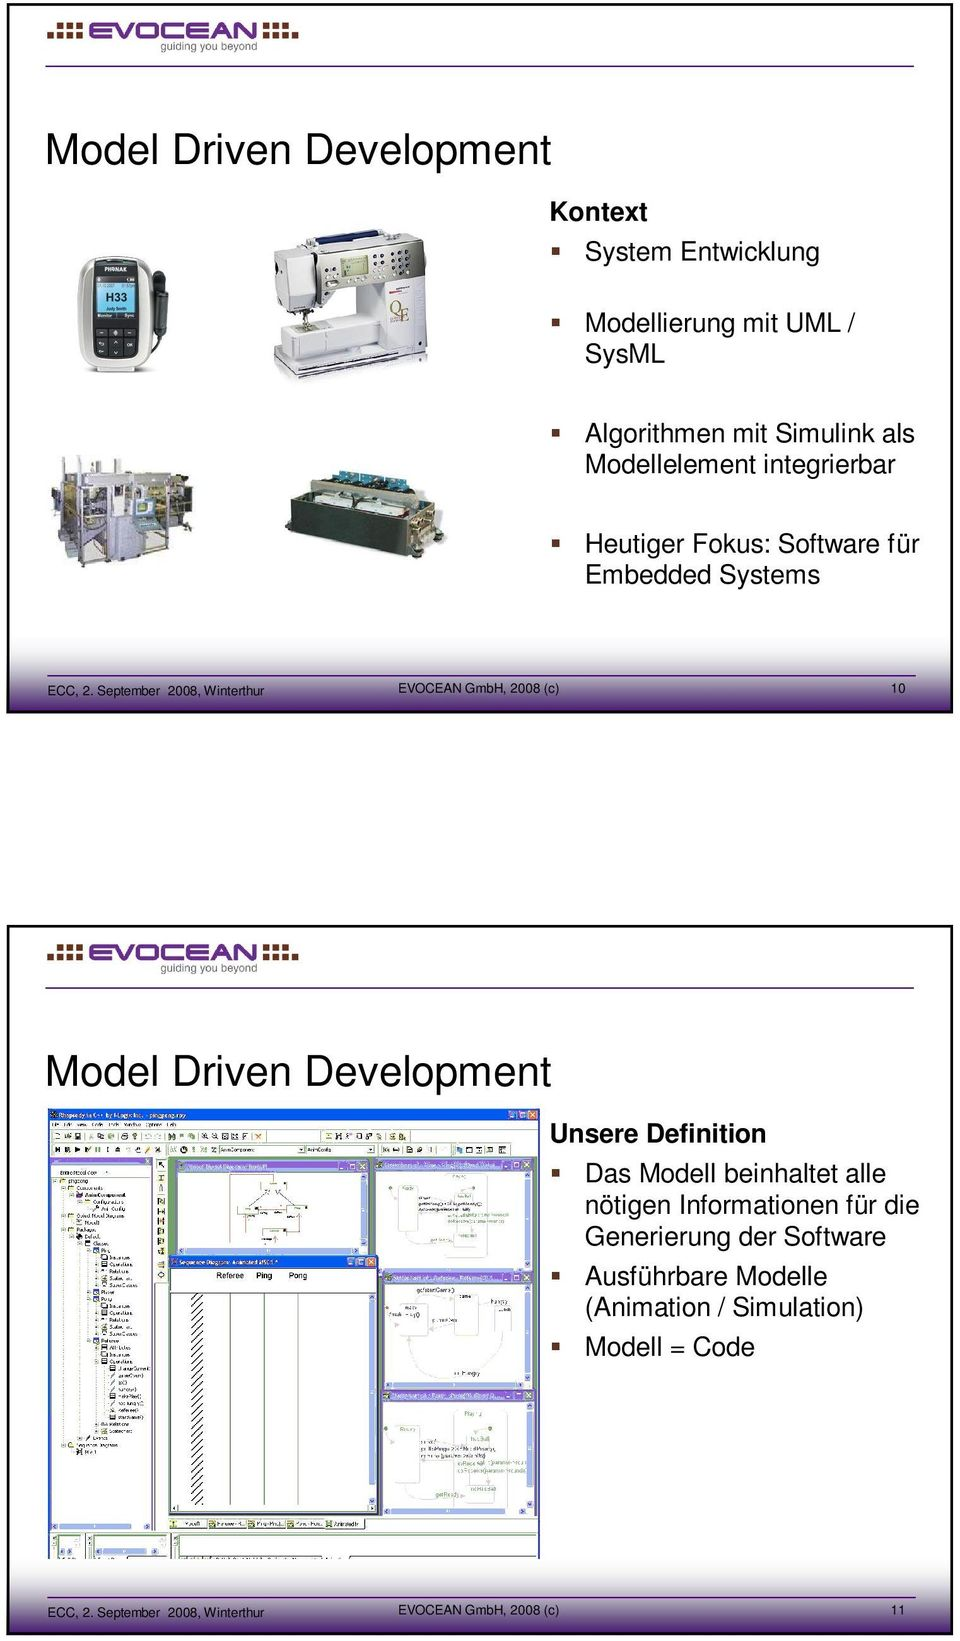 Model Driven Development Unsere Definition Das Modell beinhaltet alle nötigen Informationen